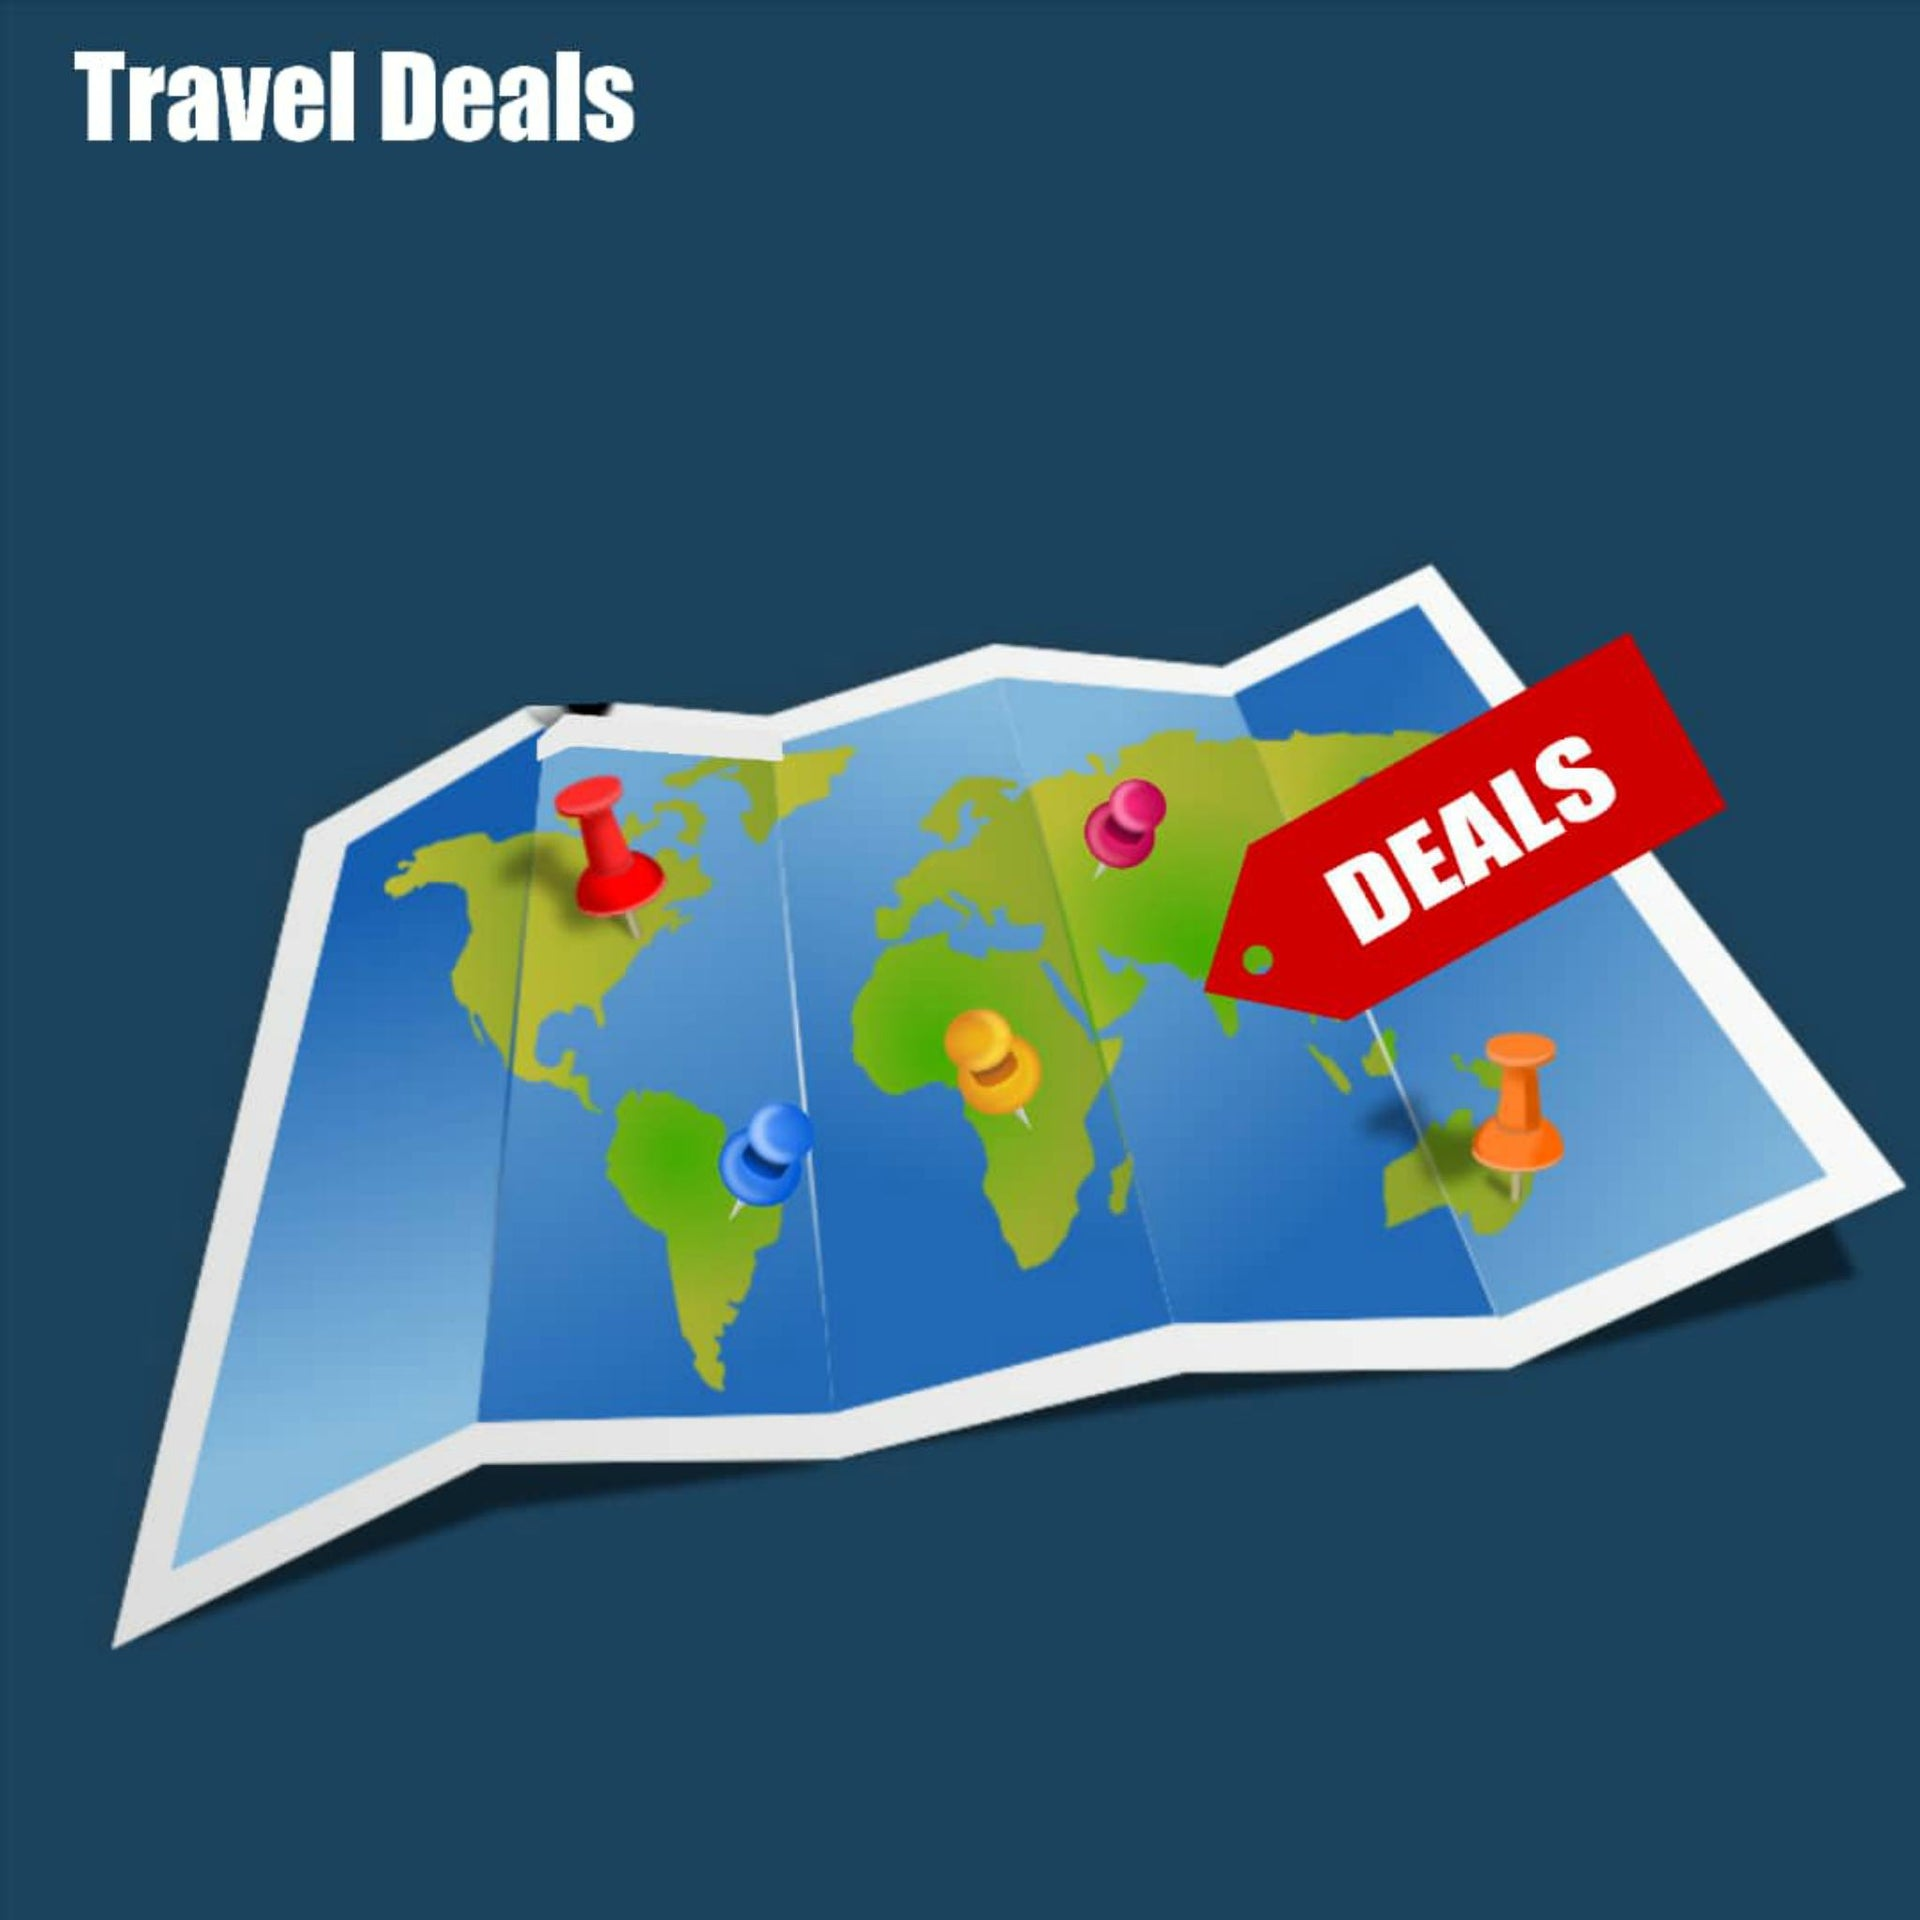 wa travel deals